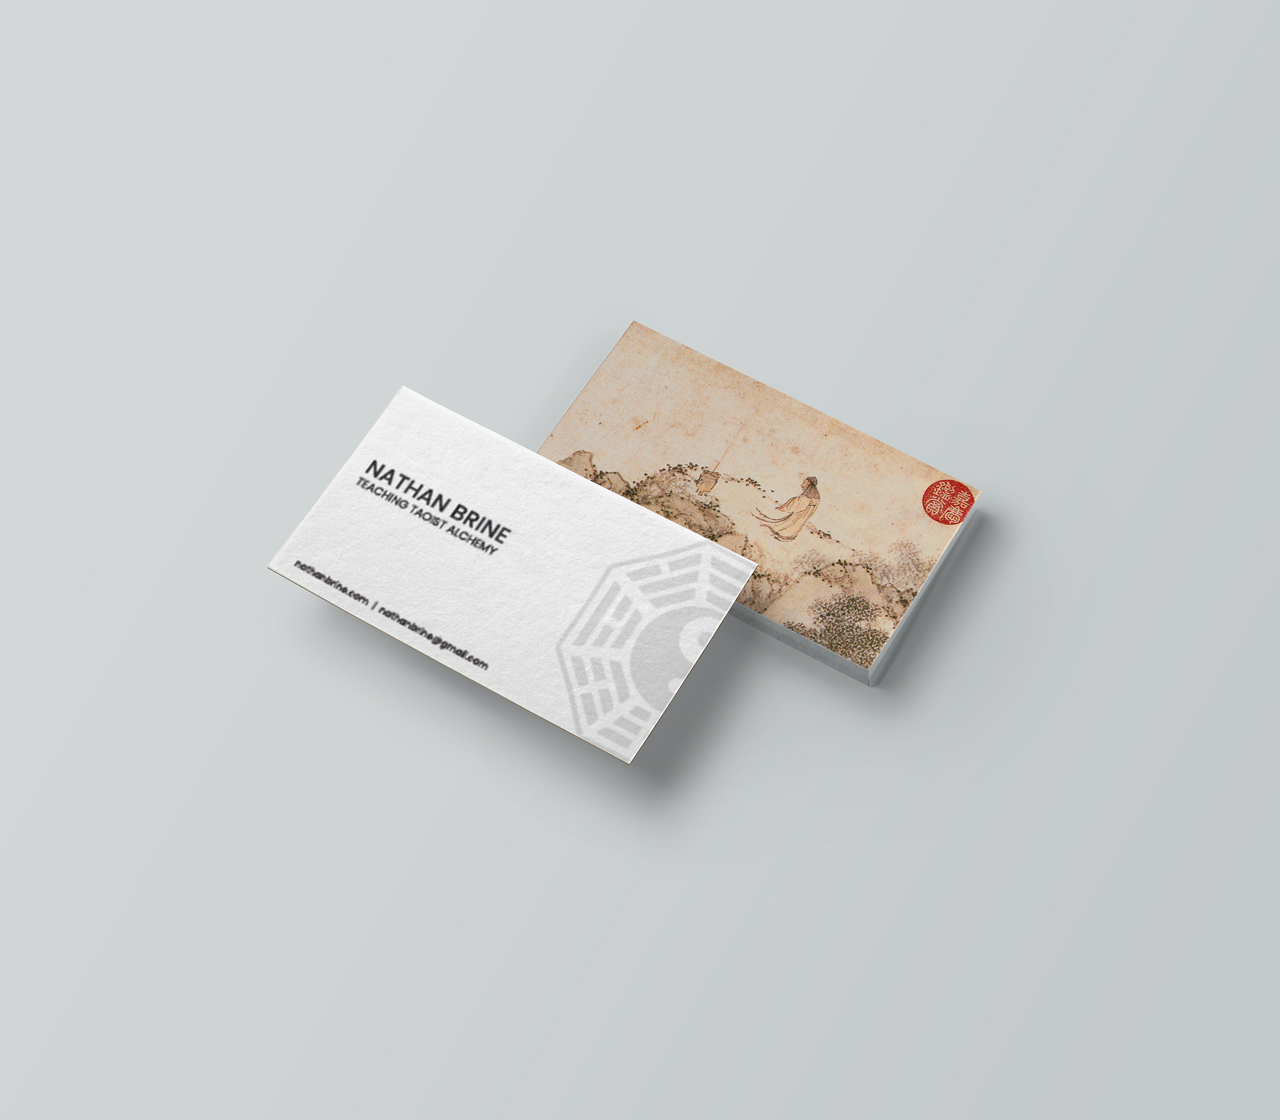 Business-Card-Nathan-Brine.jpg